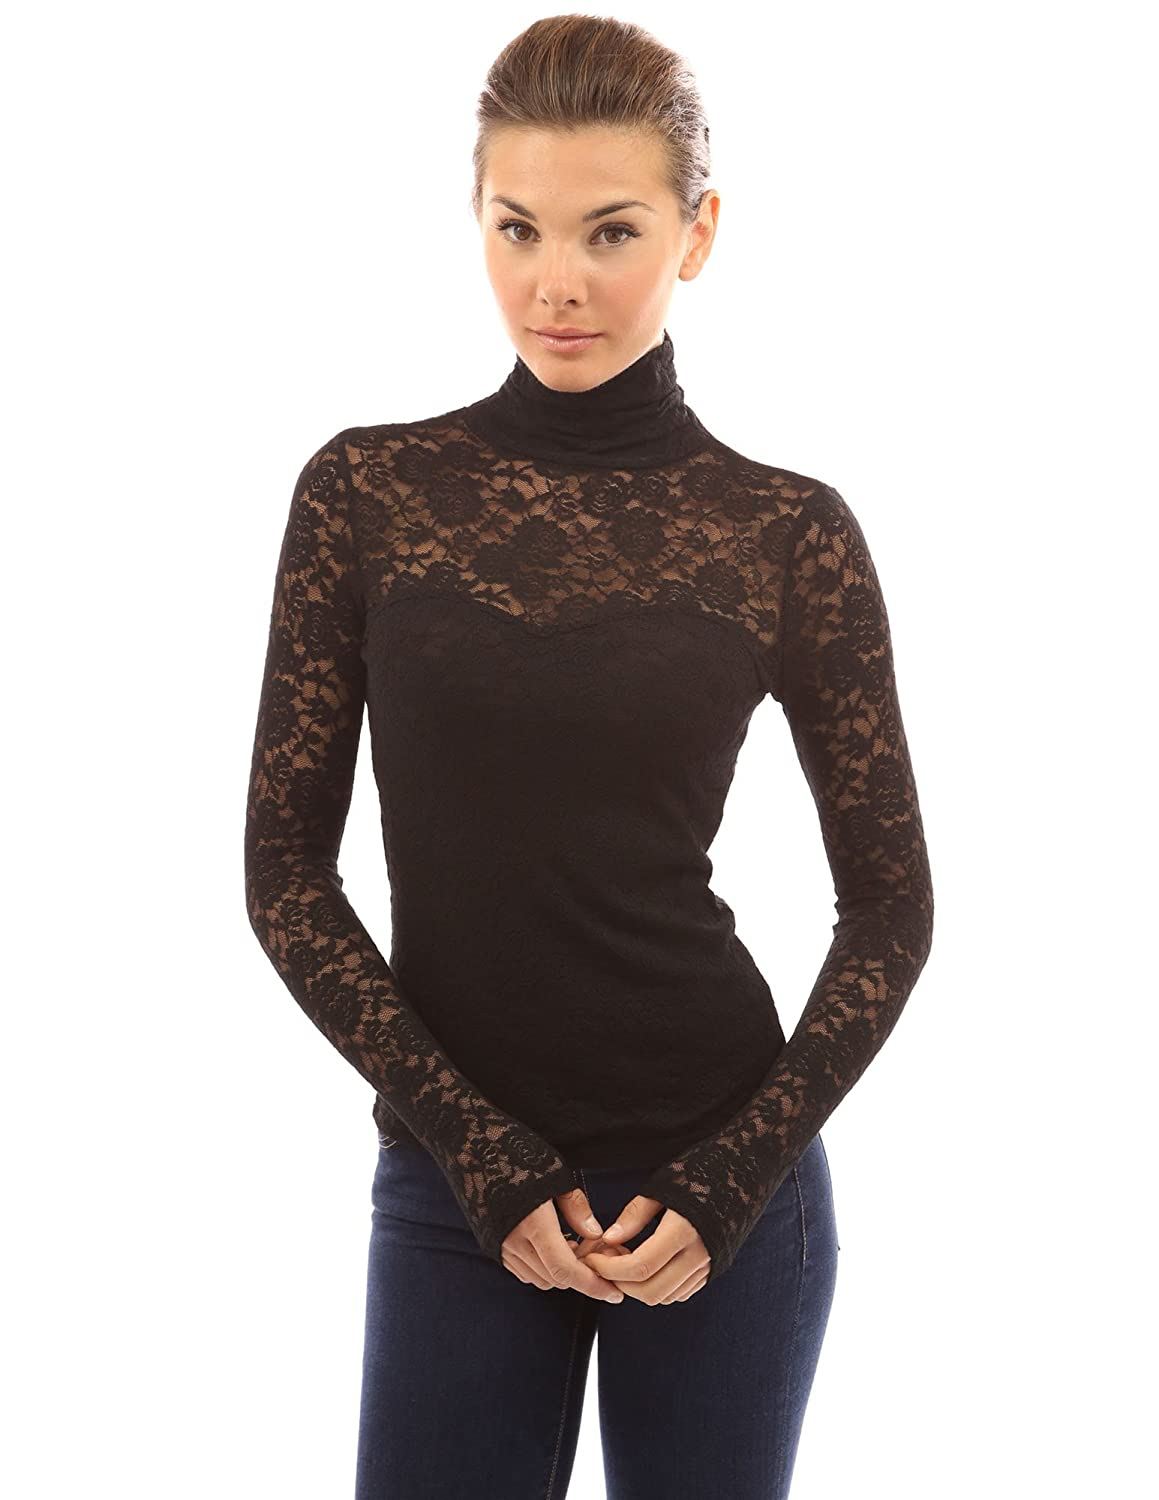 PattyBoutik Women's Turtleneck Sheer Lace Blouse